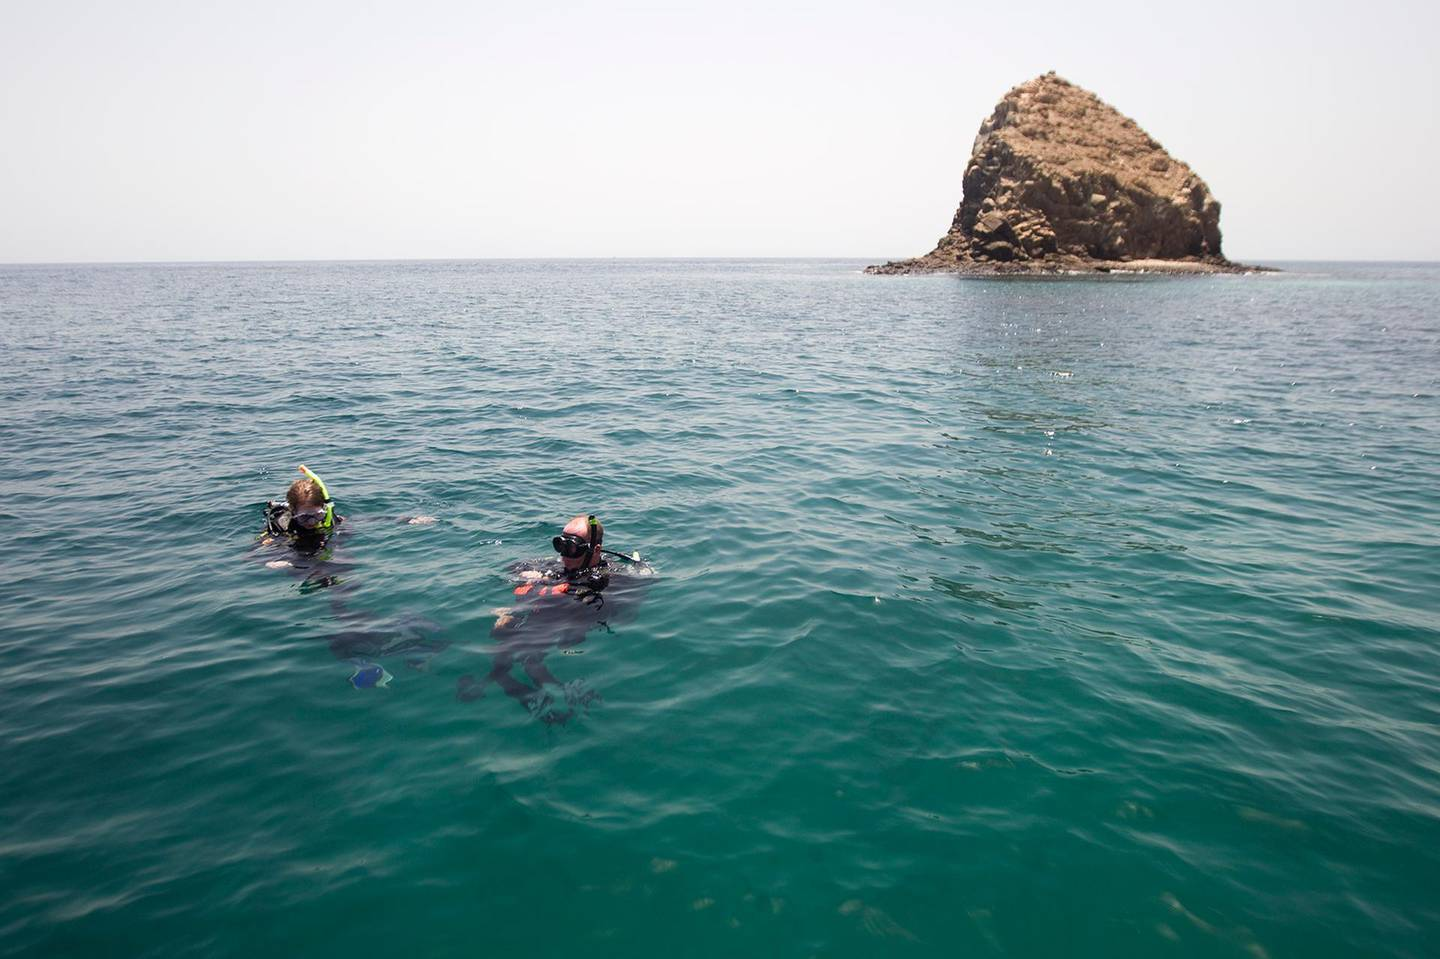 Fujairah, May 20, 2012 --  Divers prepare their equipment before submerging for an open water dive at Dibba Rock in Fujairah, May 20, 2012. (Photo by: Sarah Dea/The National) FOR weathering it summer series story by Zaineb